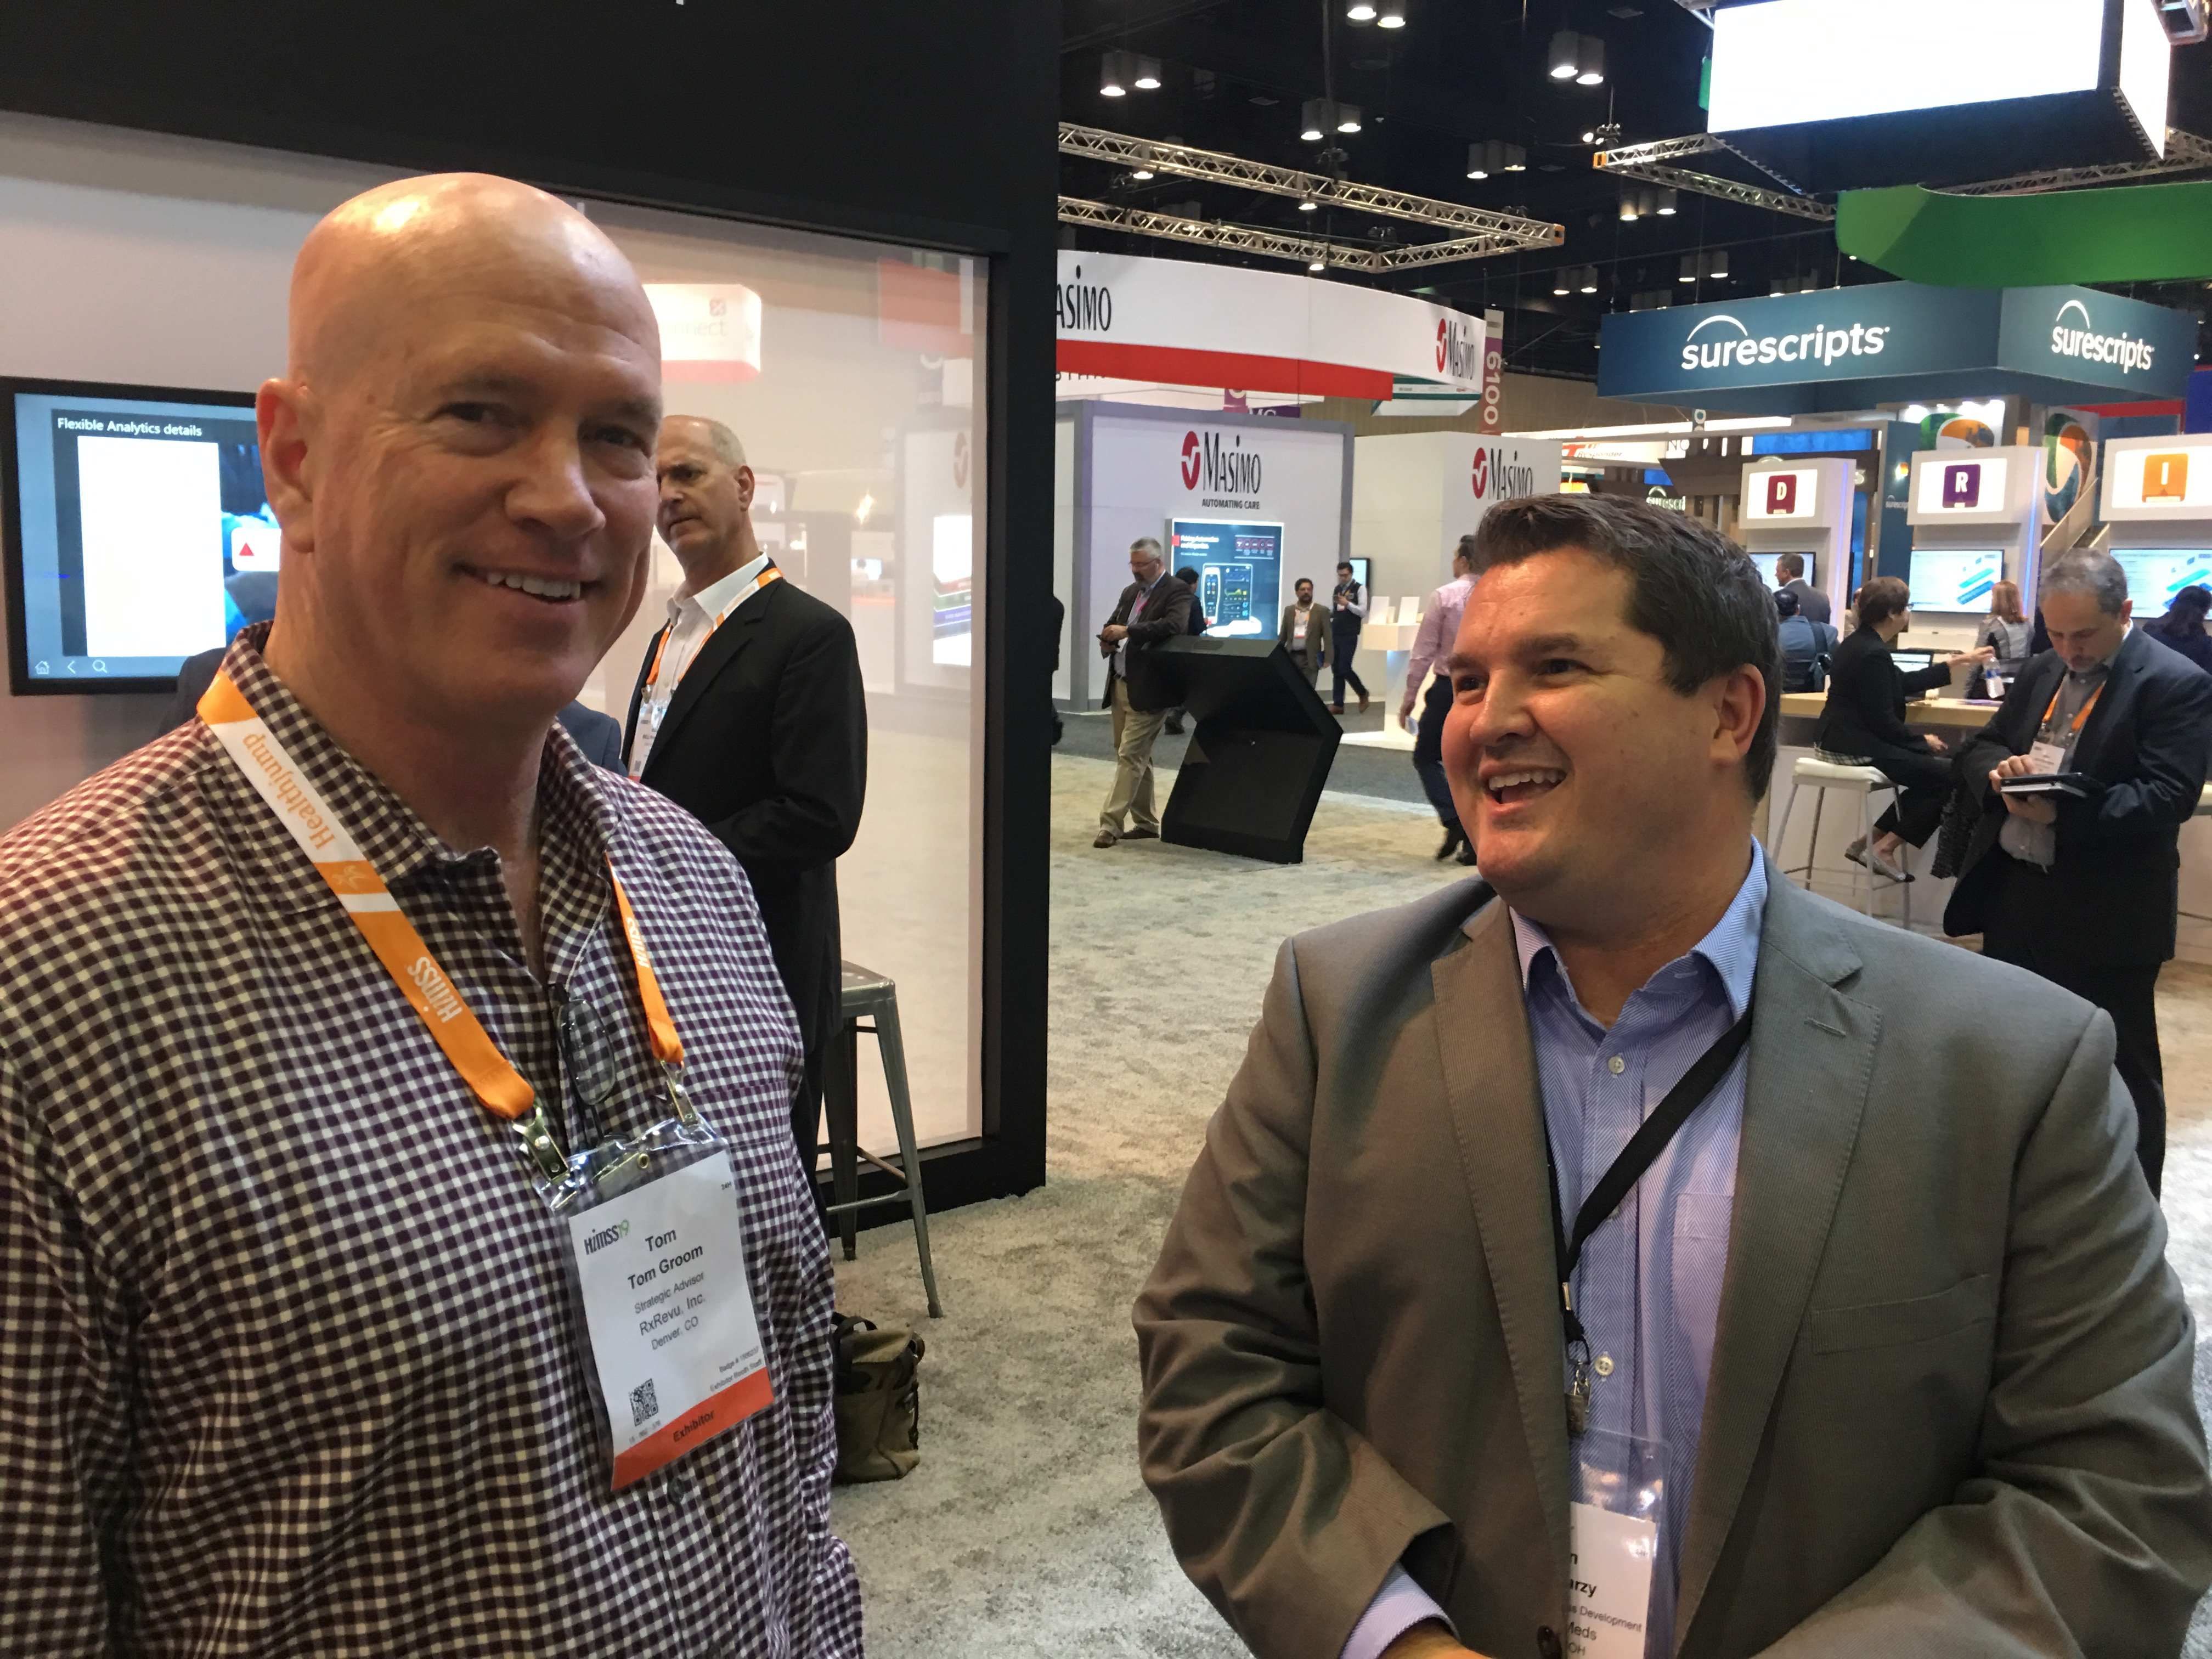 Ryan Tarzy, Tom Groom | HIMSS19 Orlando